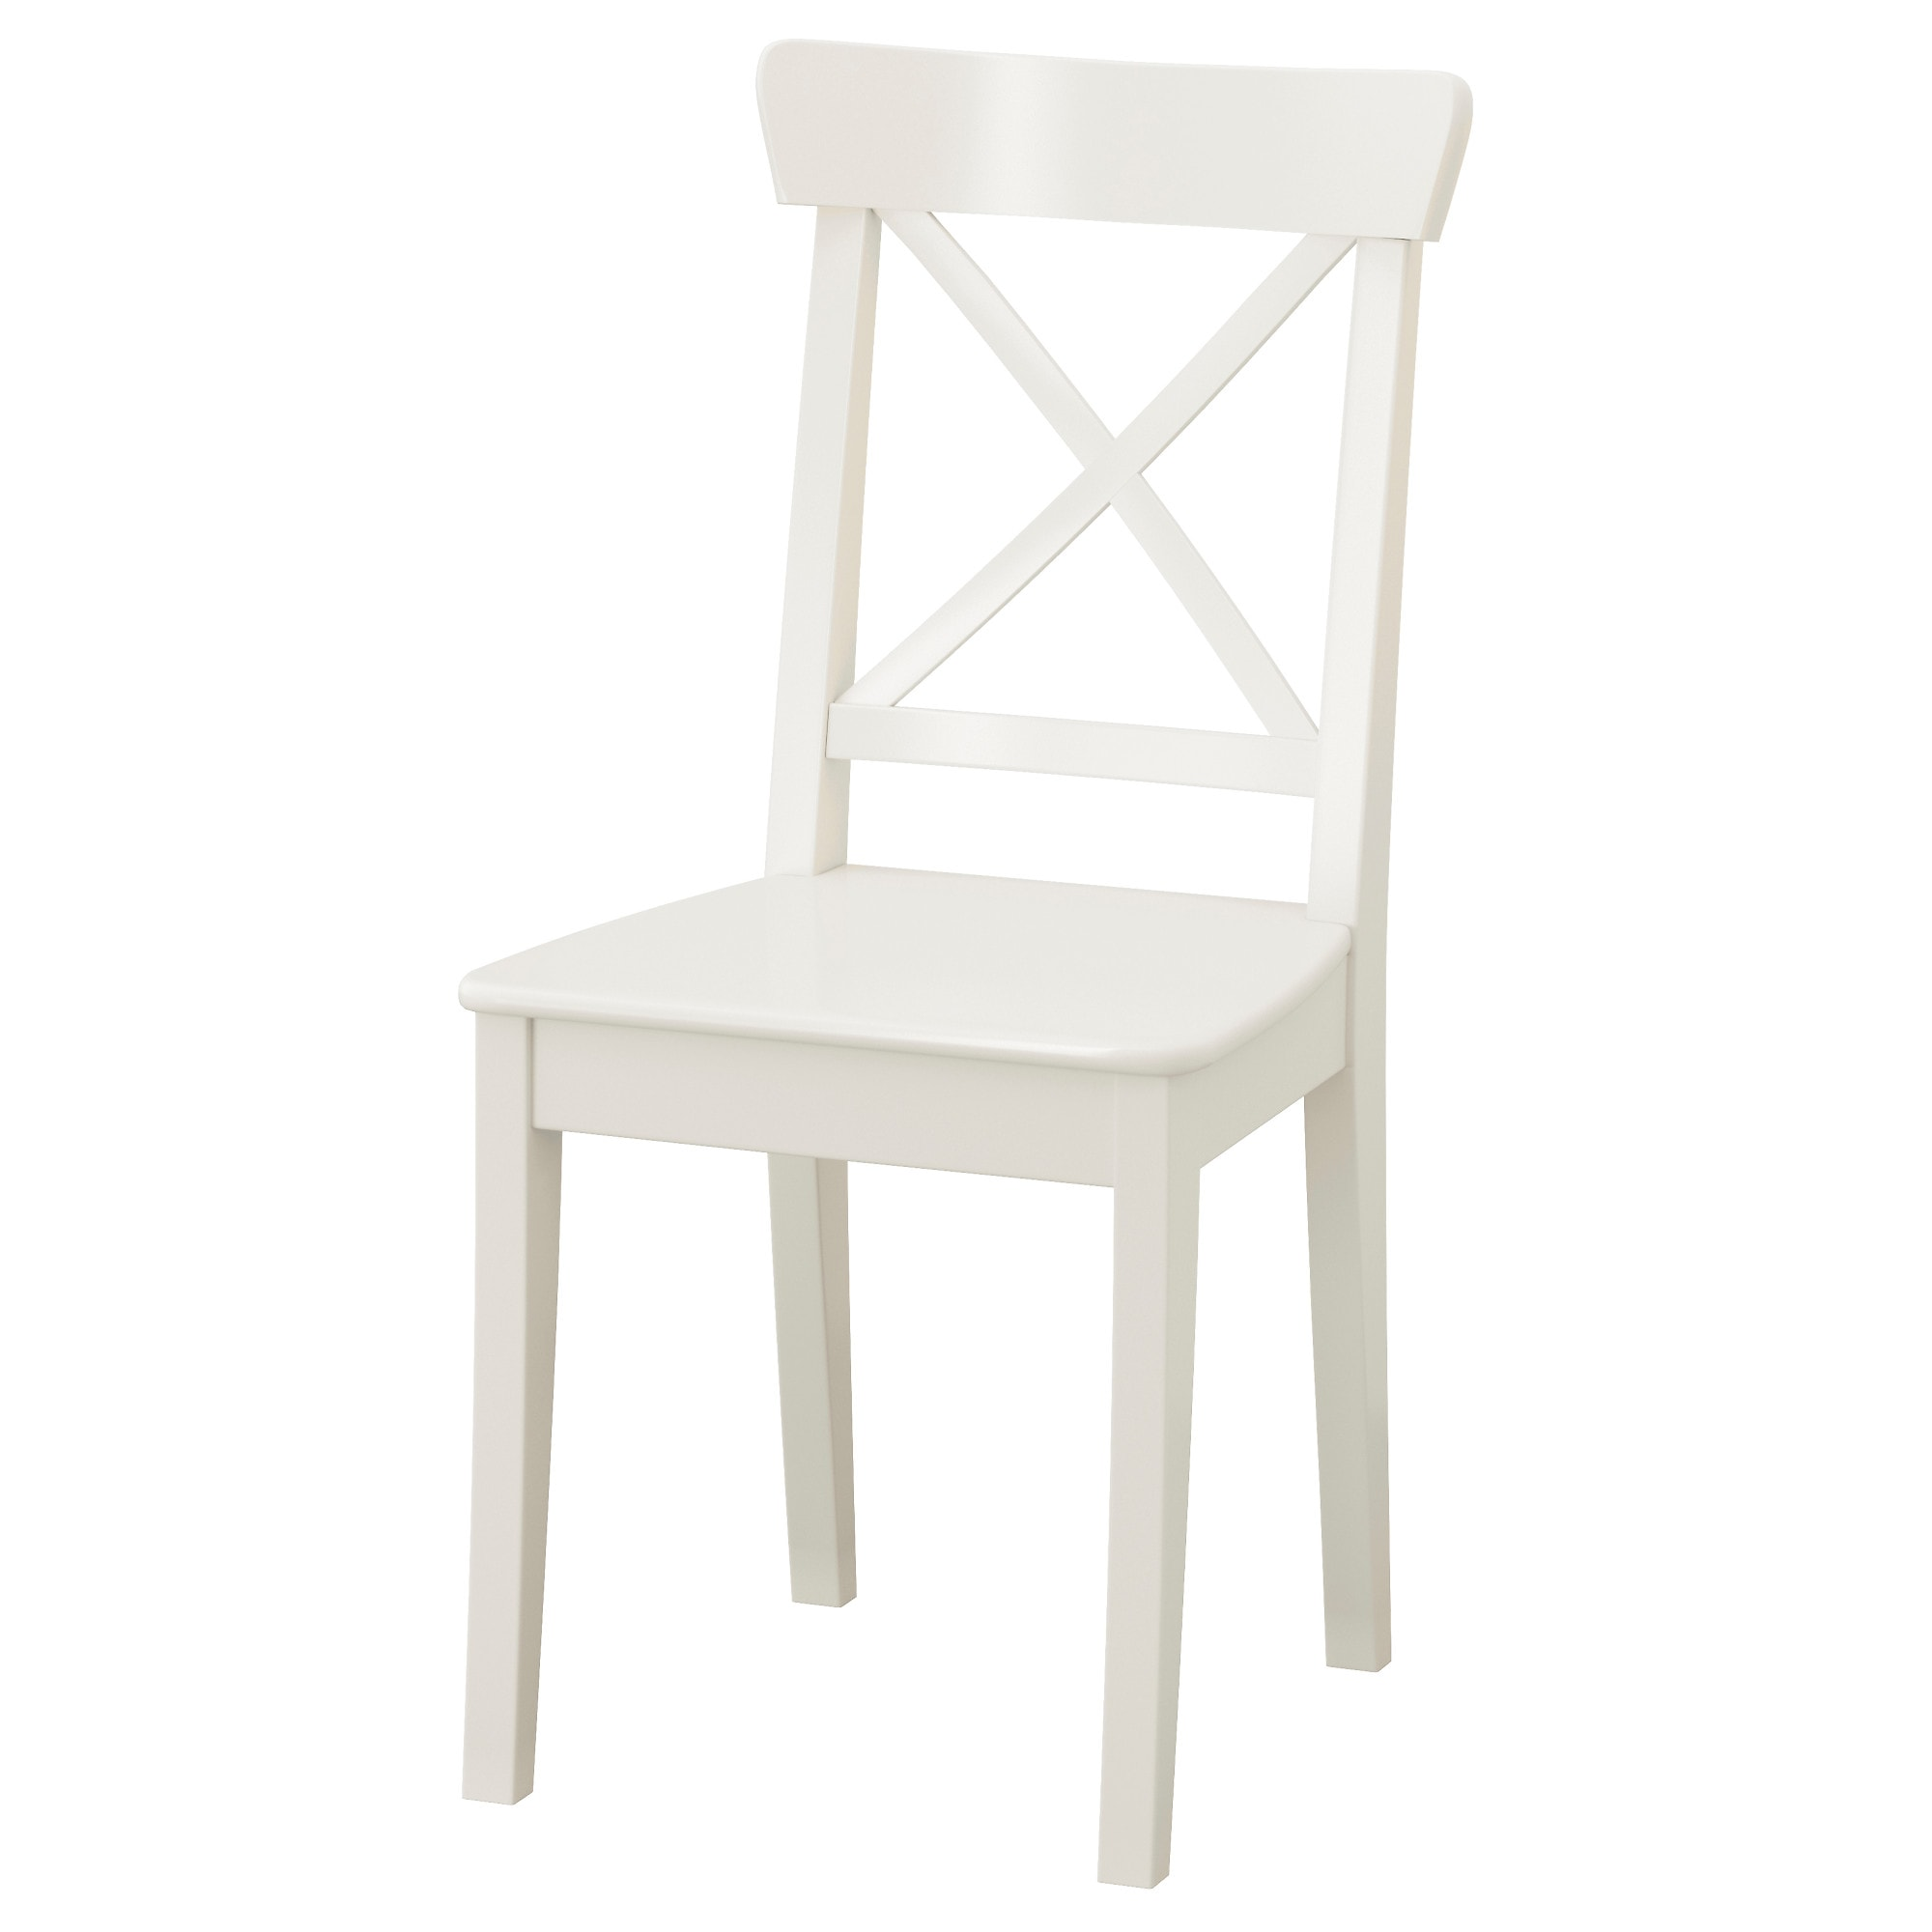 Black chair and white chair - Ingolf Chair White Tested For 243 Lb Width 16 7 8